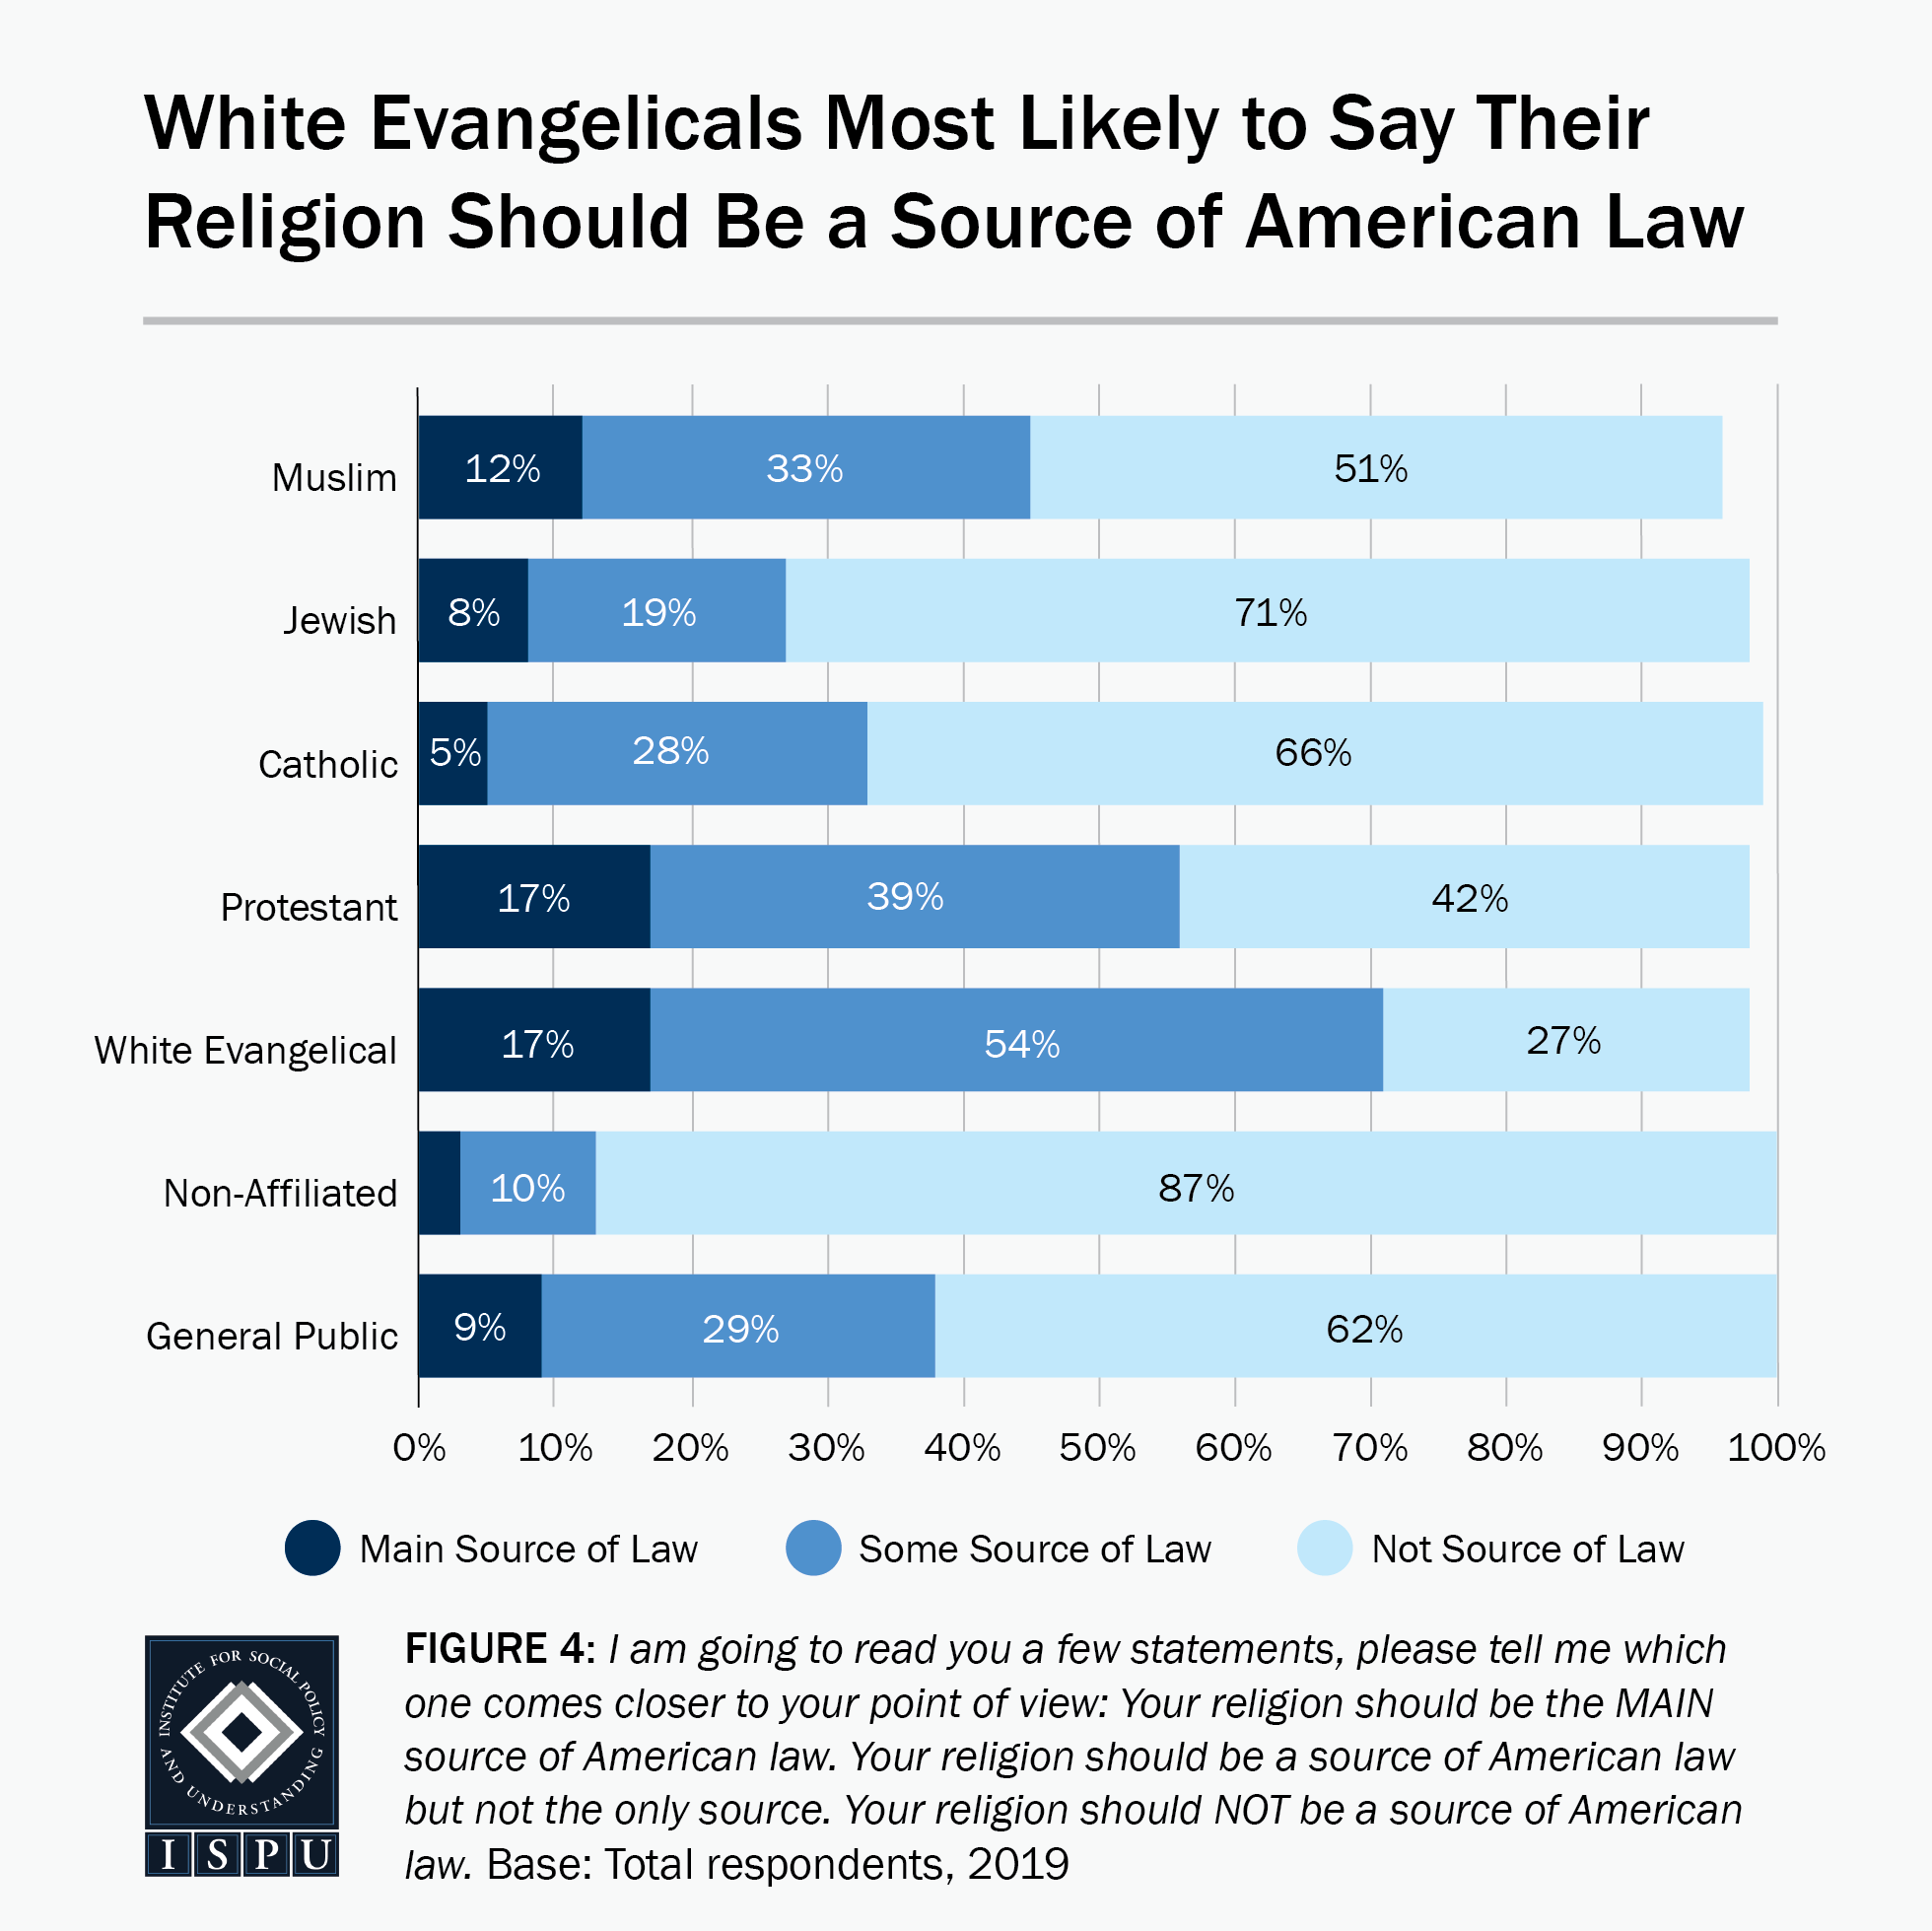 Figure 4: A bar graph showing that white Evangelicals are the most likely faith group to say their religion should be a source of American law